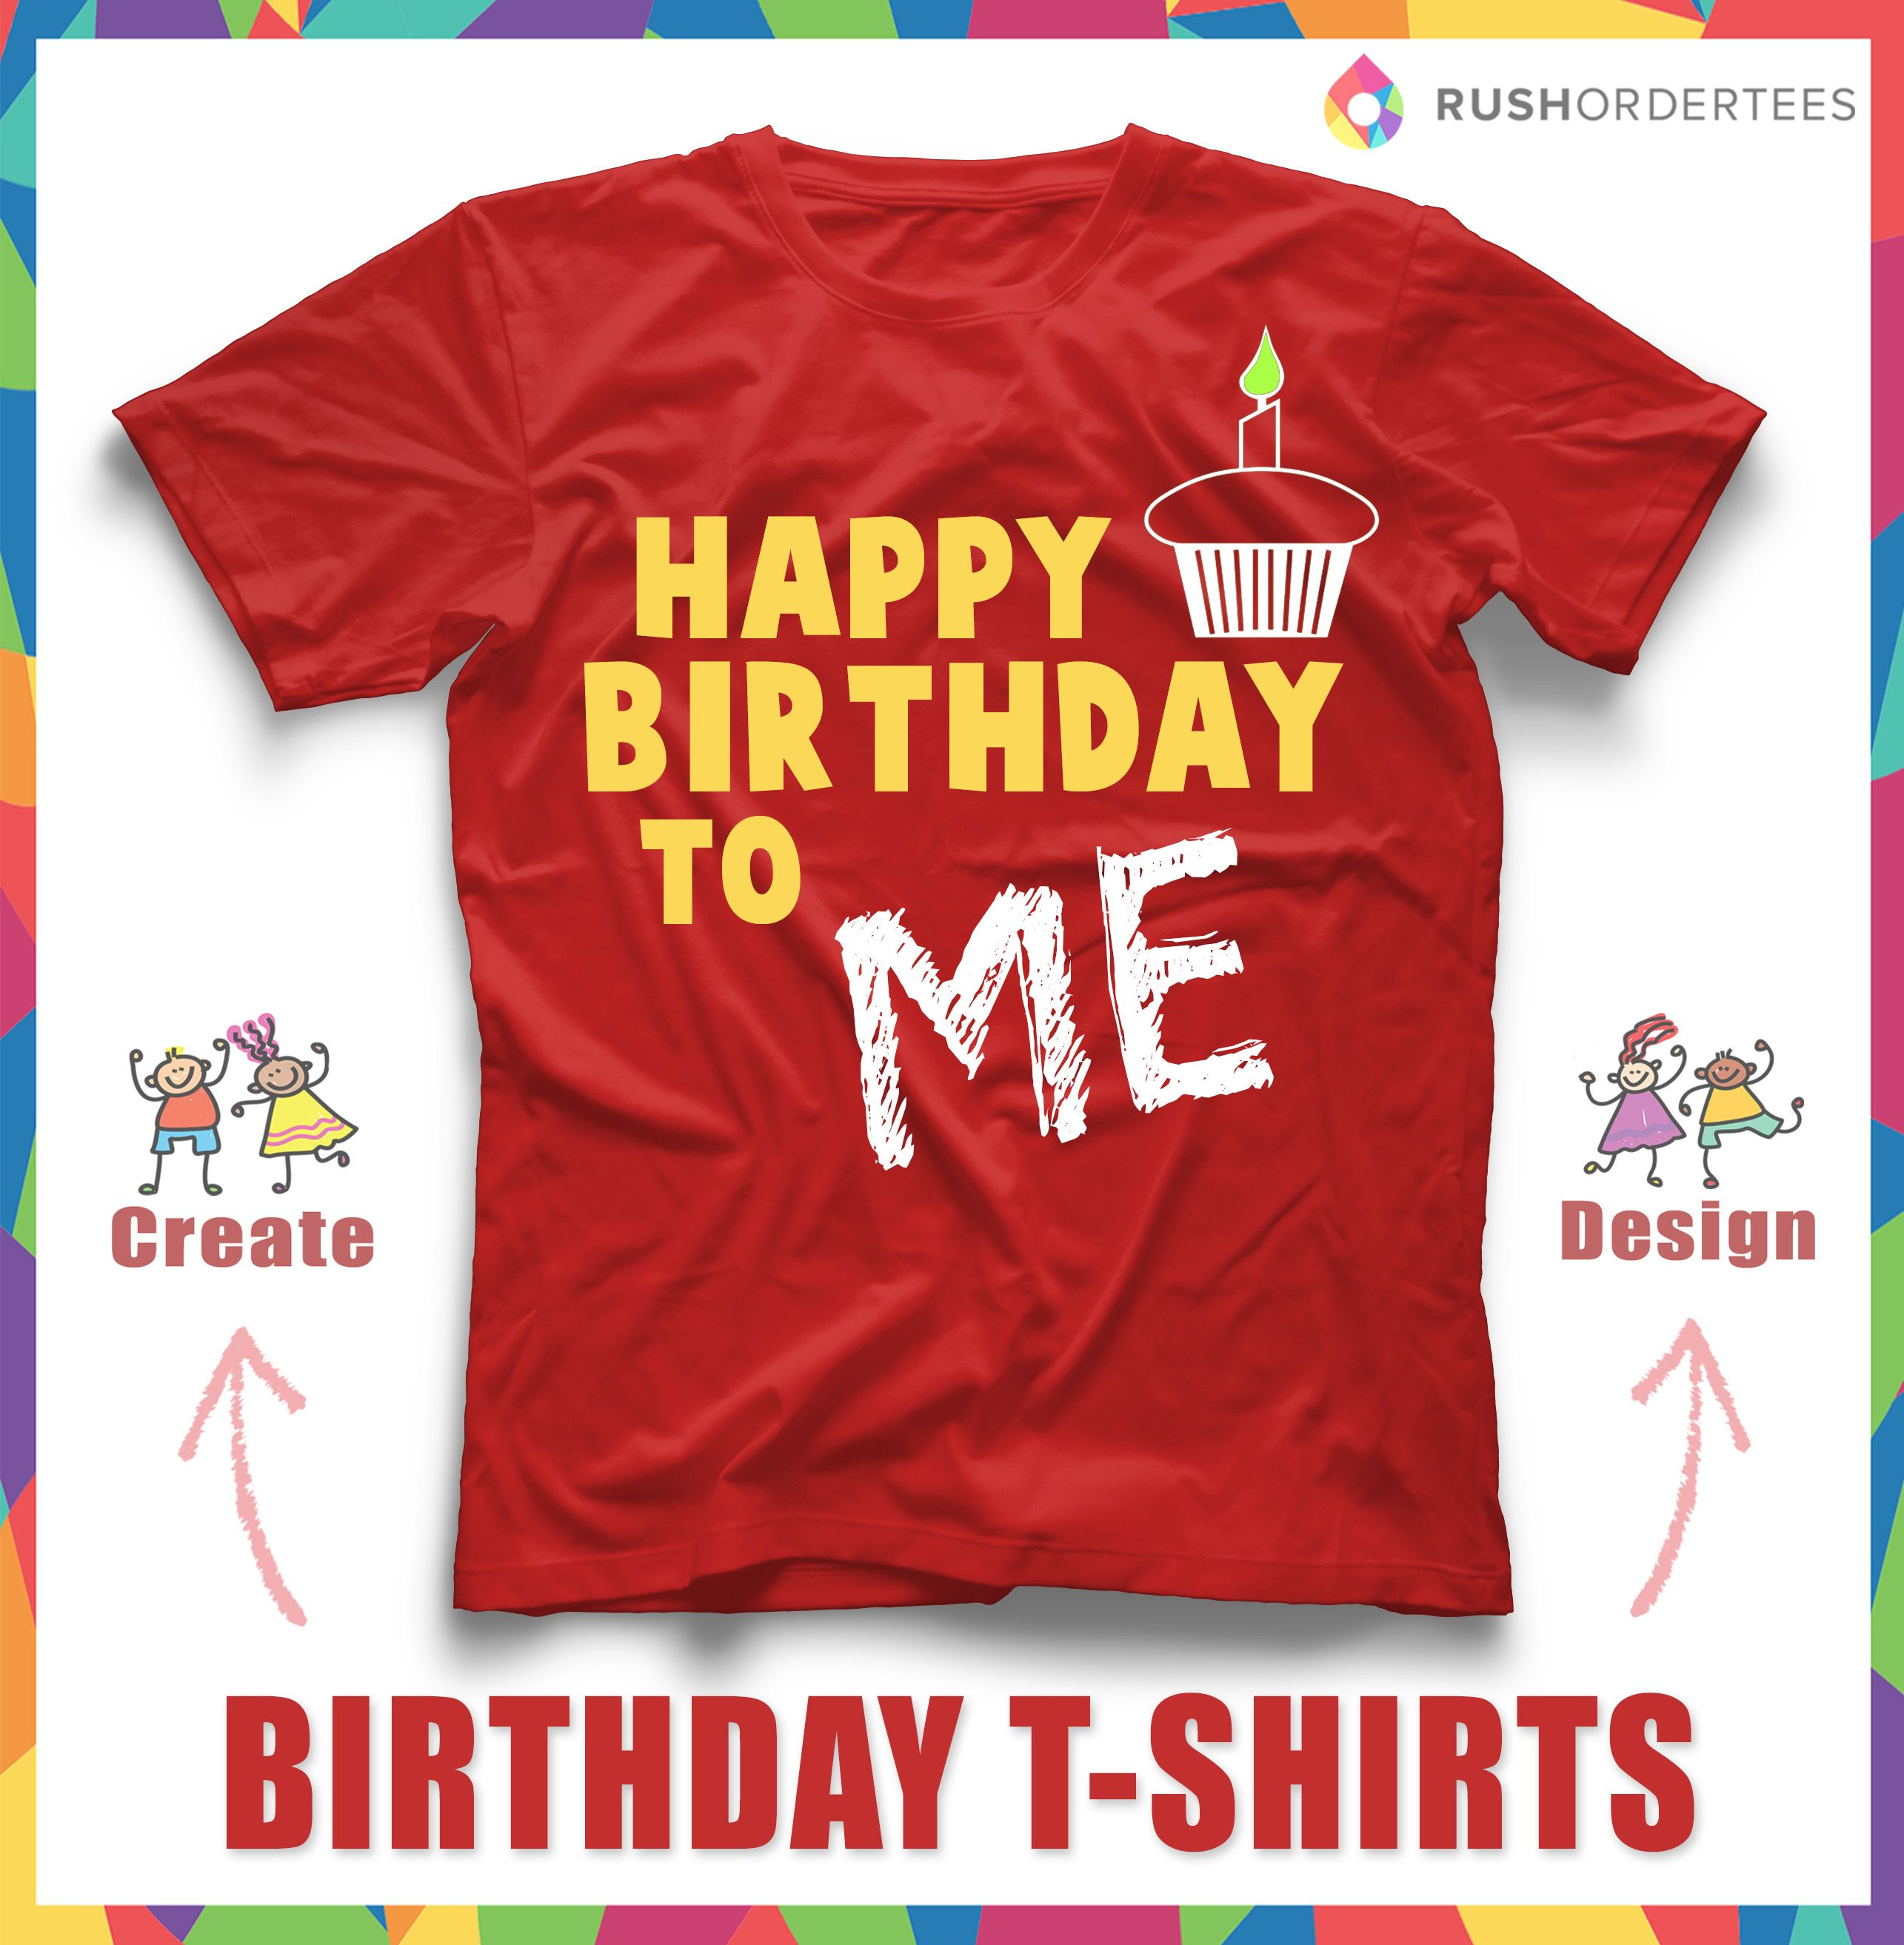 Happy Birthday To Me Custom Tshirt Idea HappyBirthday Myself Create Your Online Now In Our OnlinDesign Studio